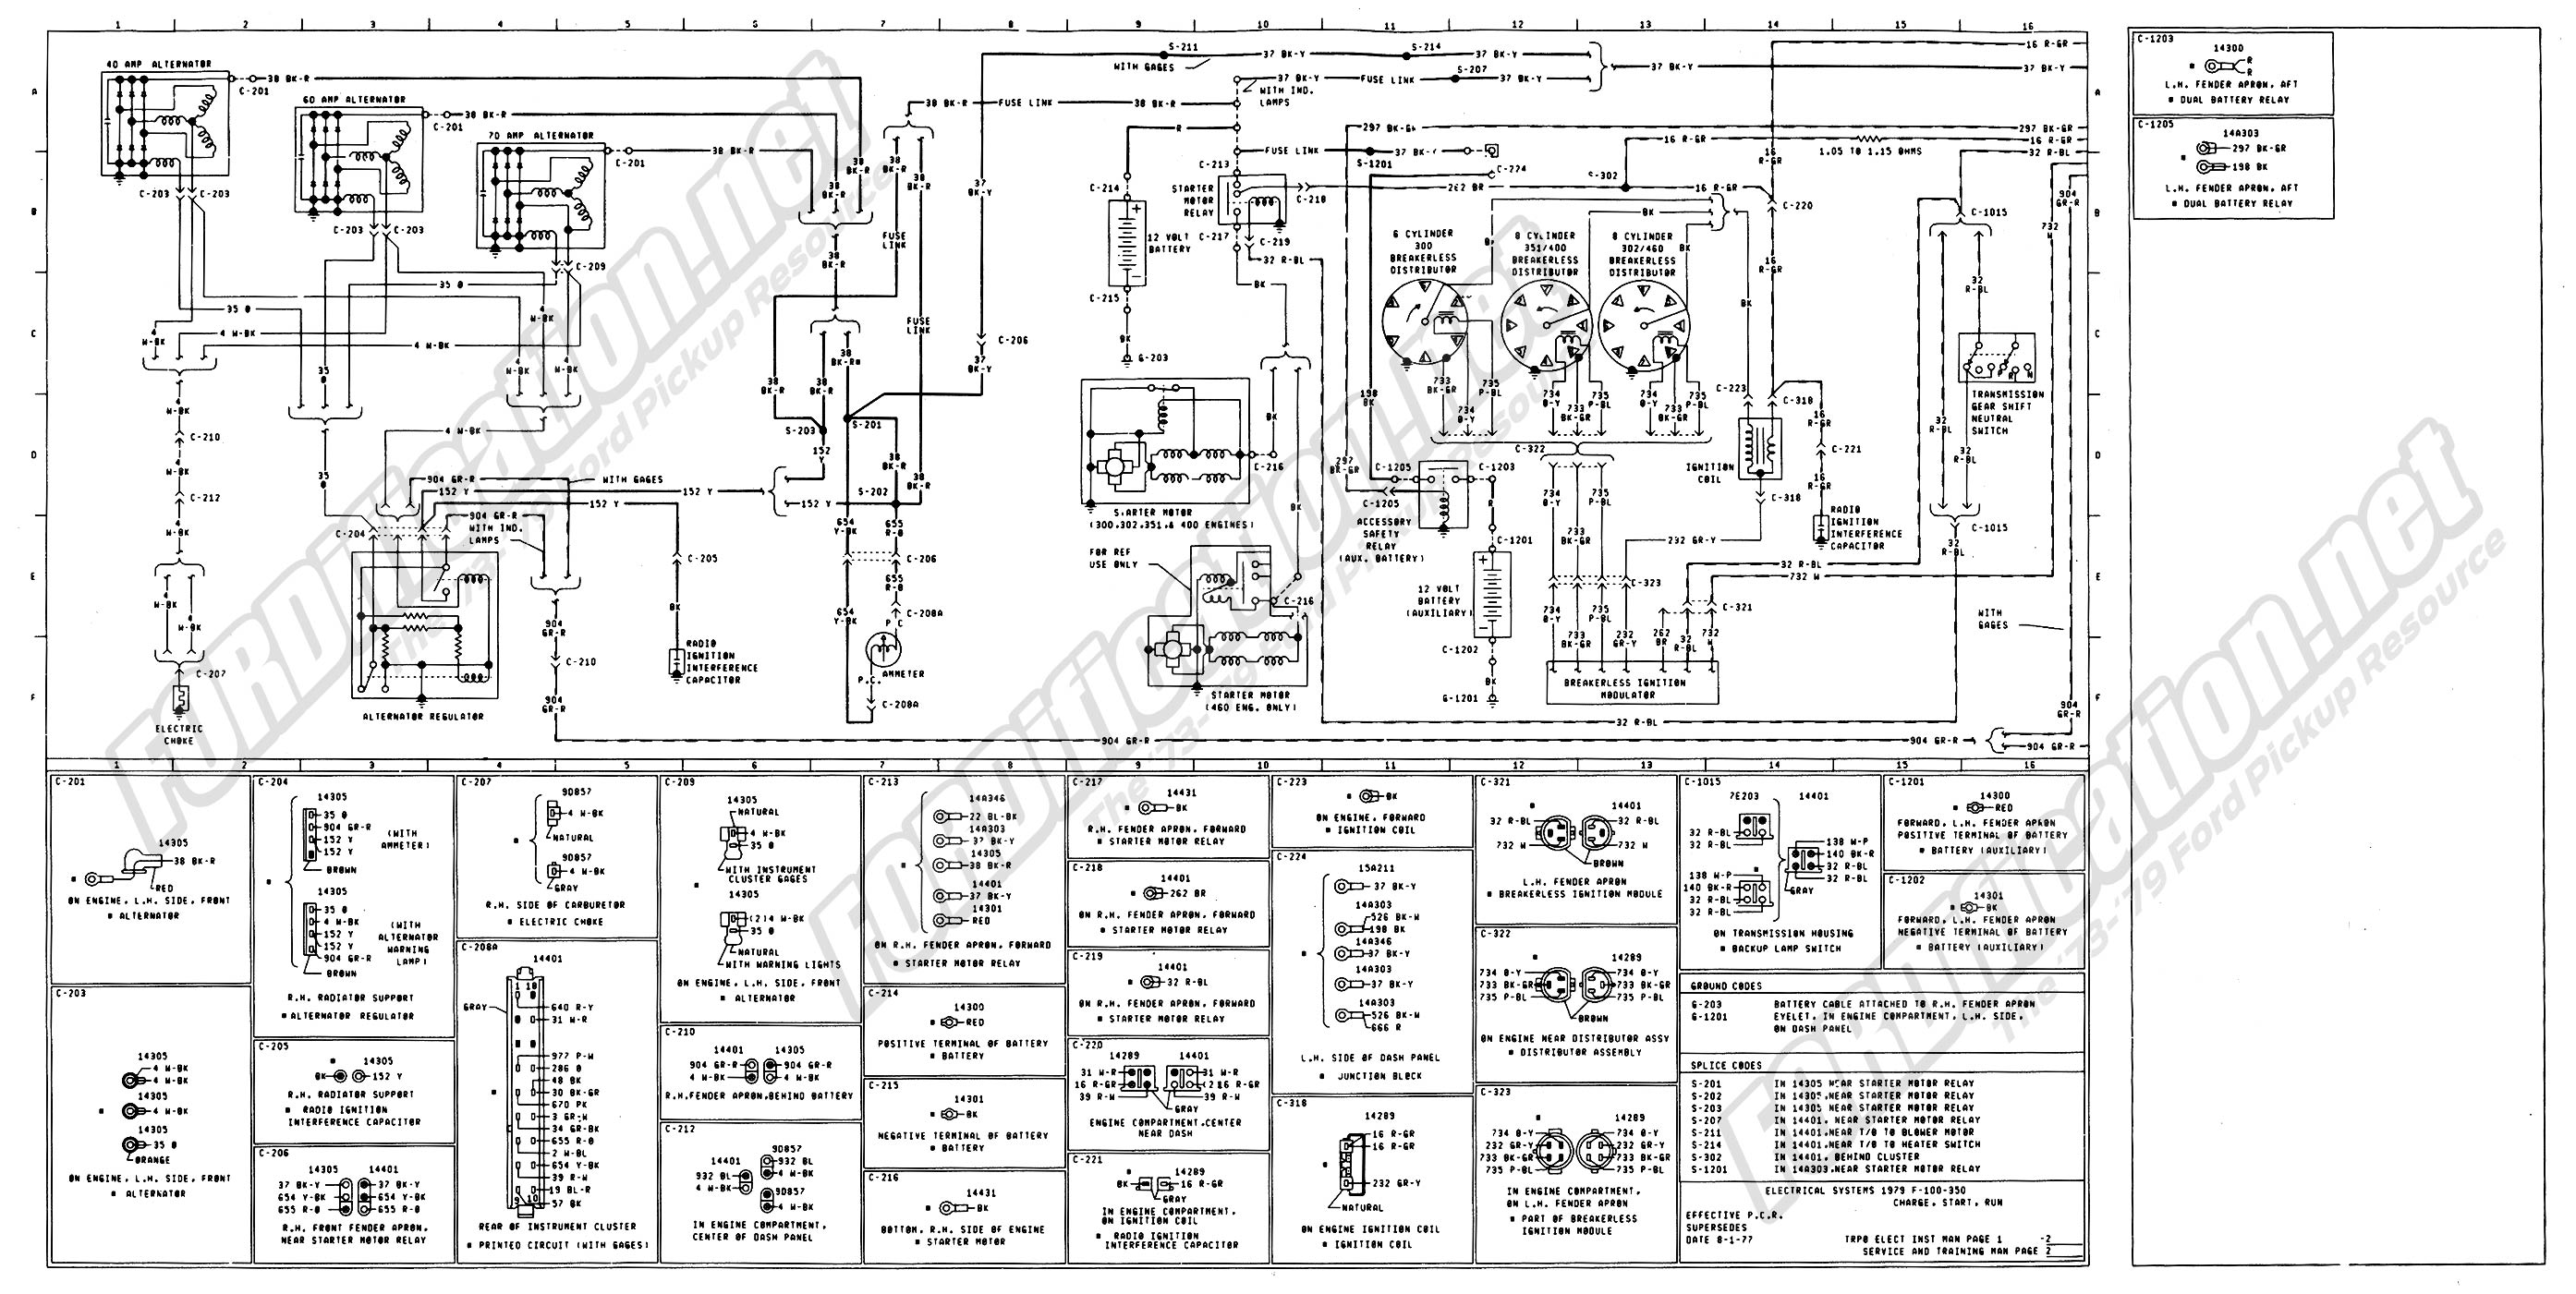 wiring_79master_2of9 1973 1979 ford truck wiring diagrams & schematics fordification net Ford 3 Wire Alternator Diagram at bayanpartner.co